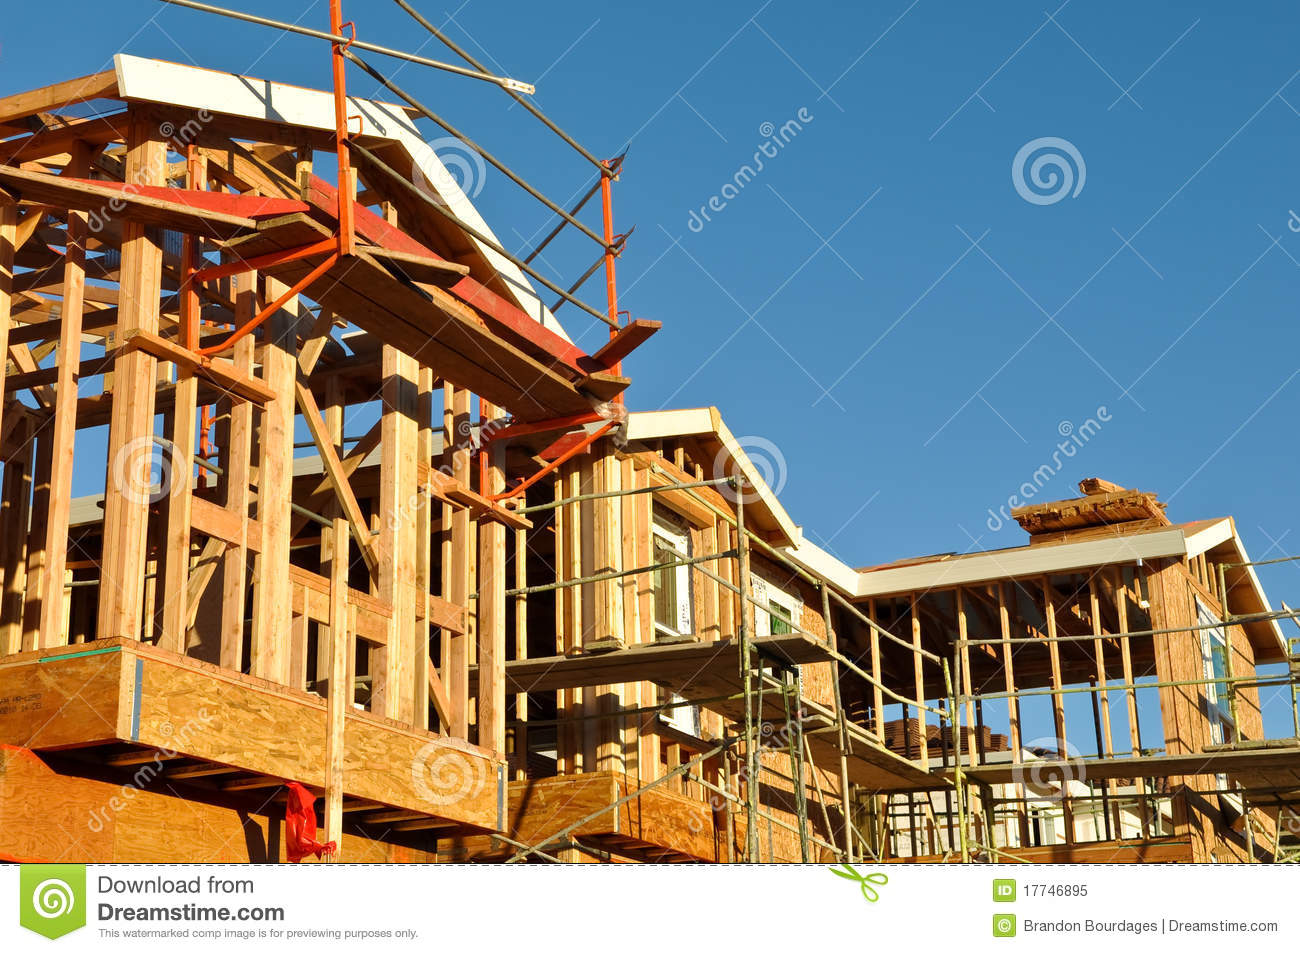 New Residential Homes Under Construction Stock Image